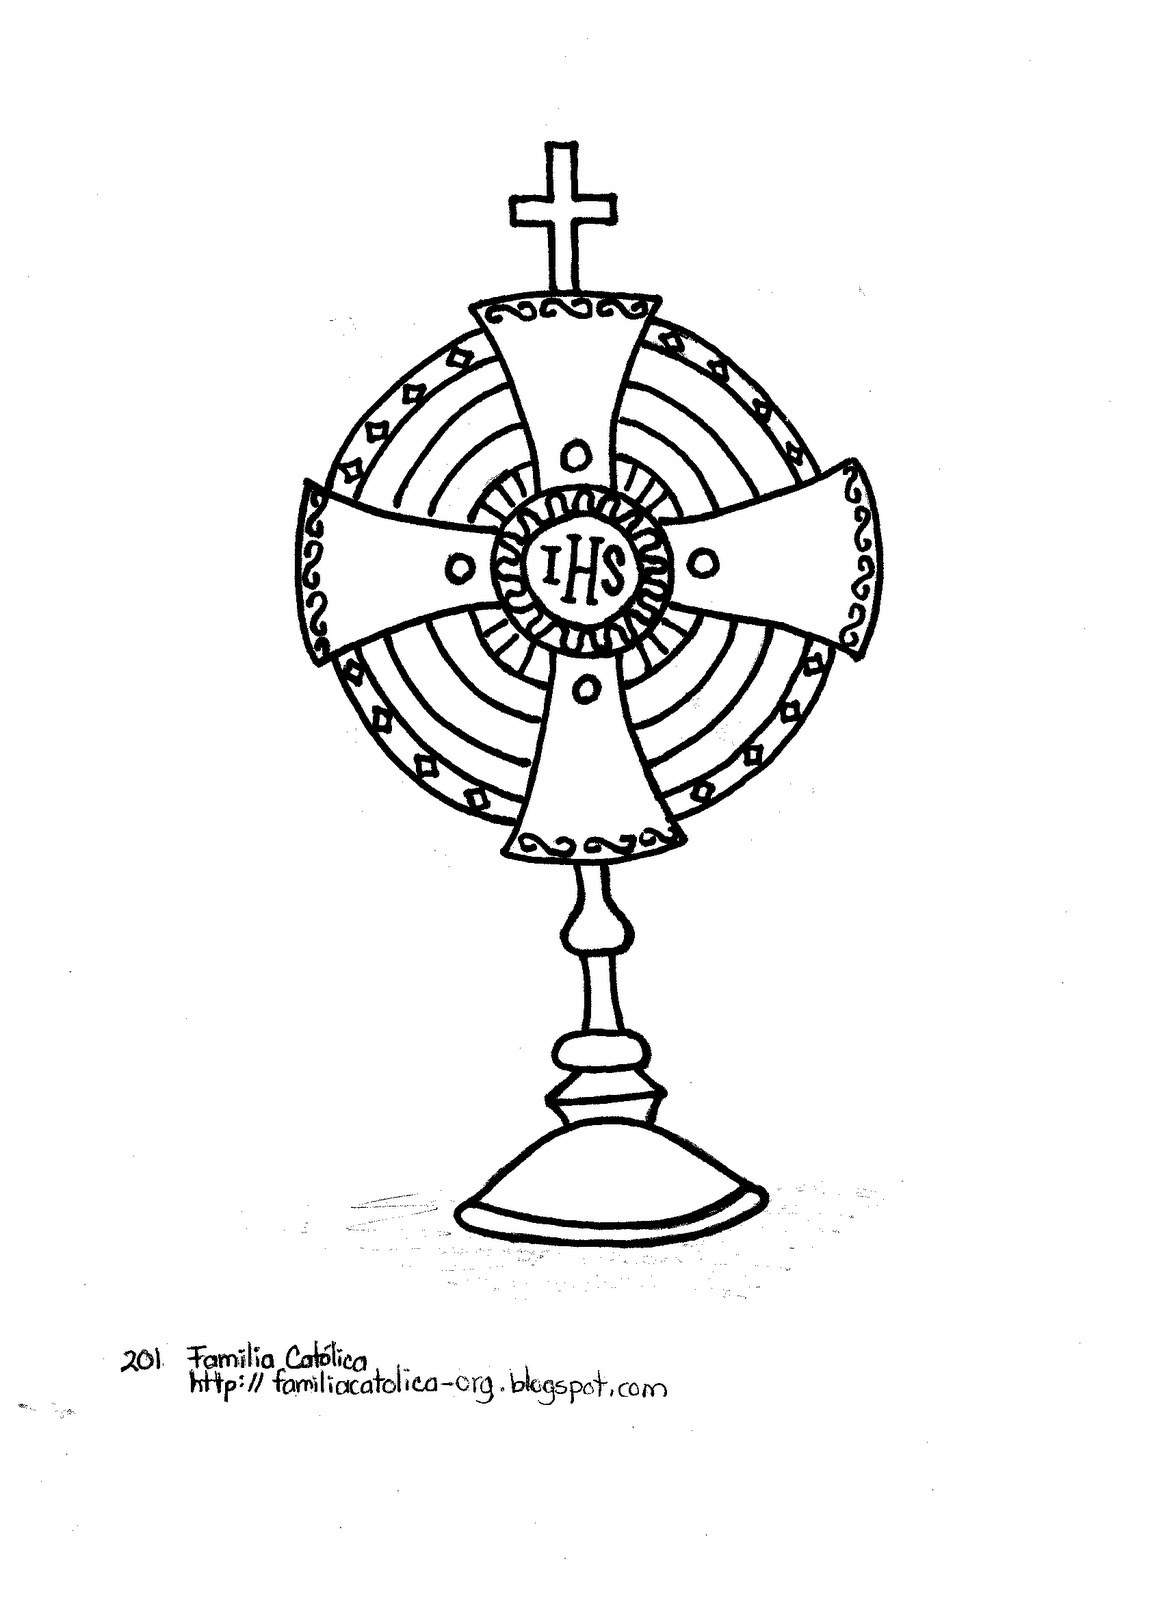 monstrance coloring pages for kids - photo#8